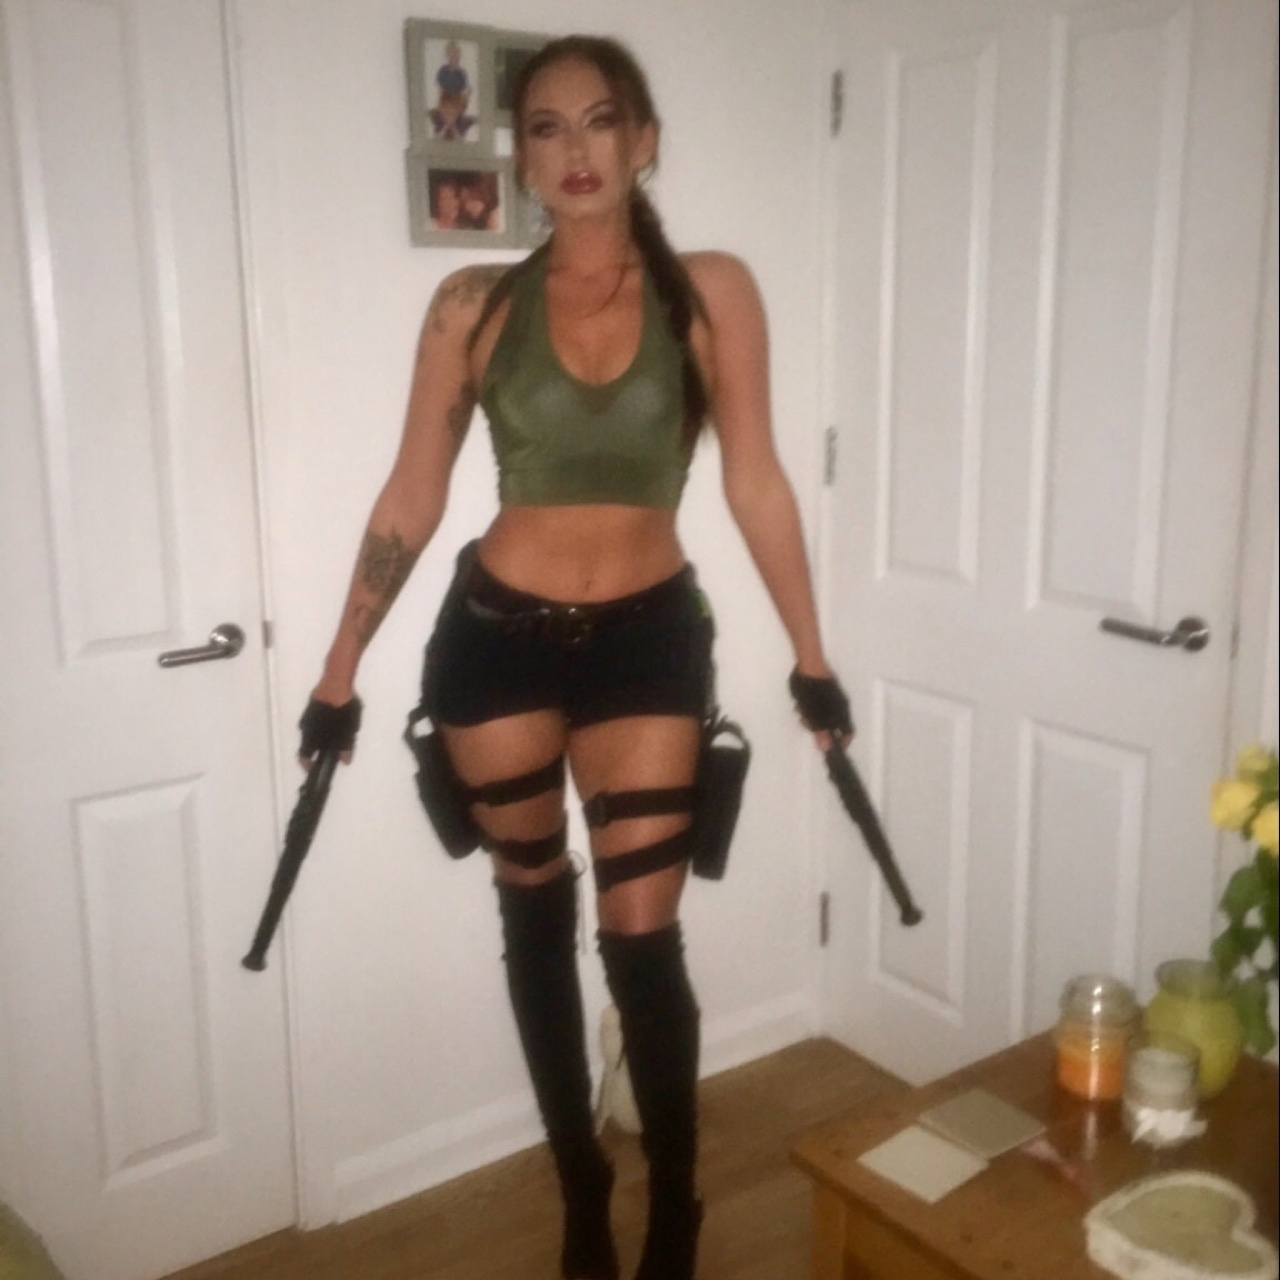 The Holy Ghost Electric Show Lara Croft Costume